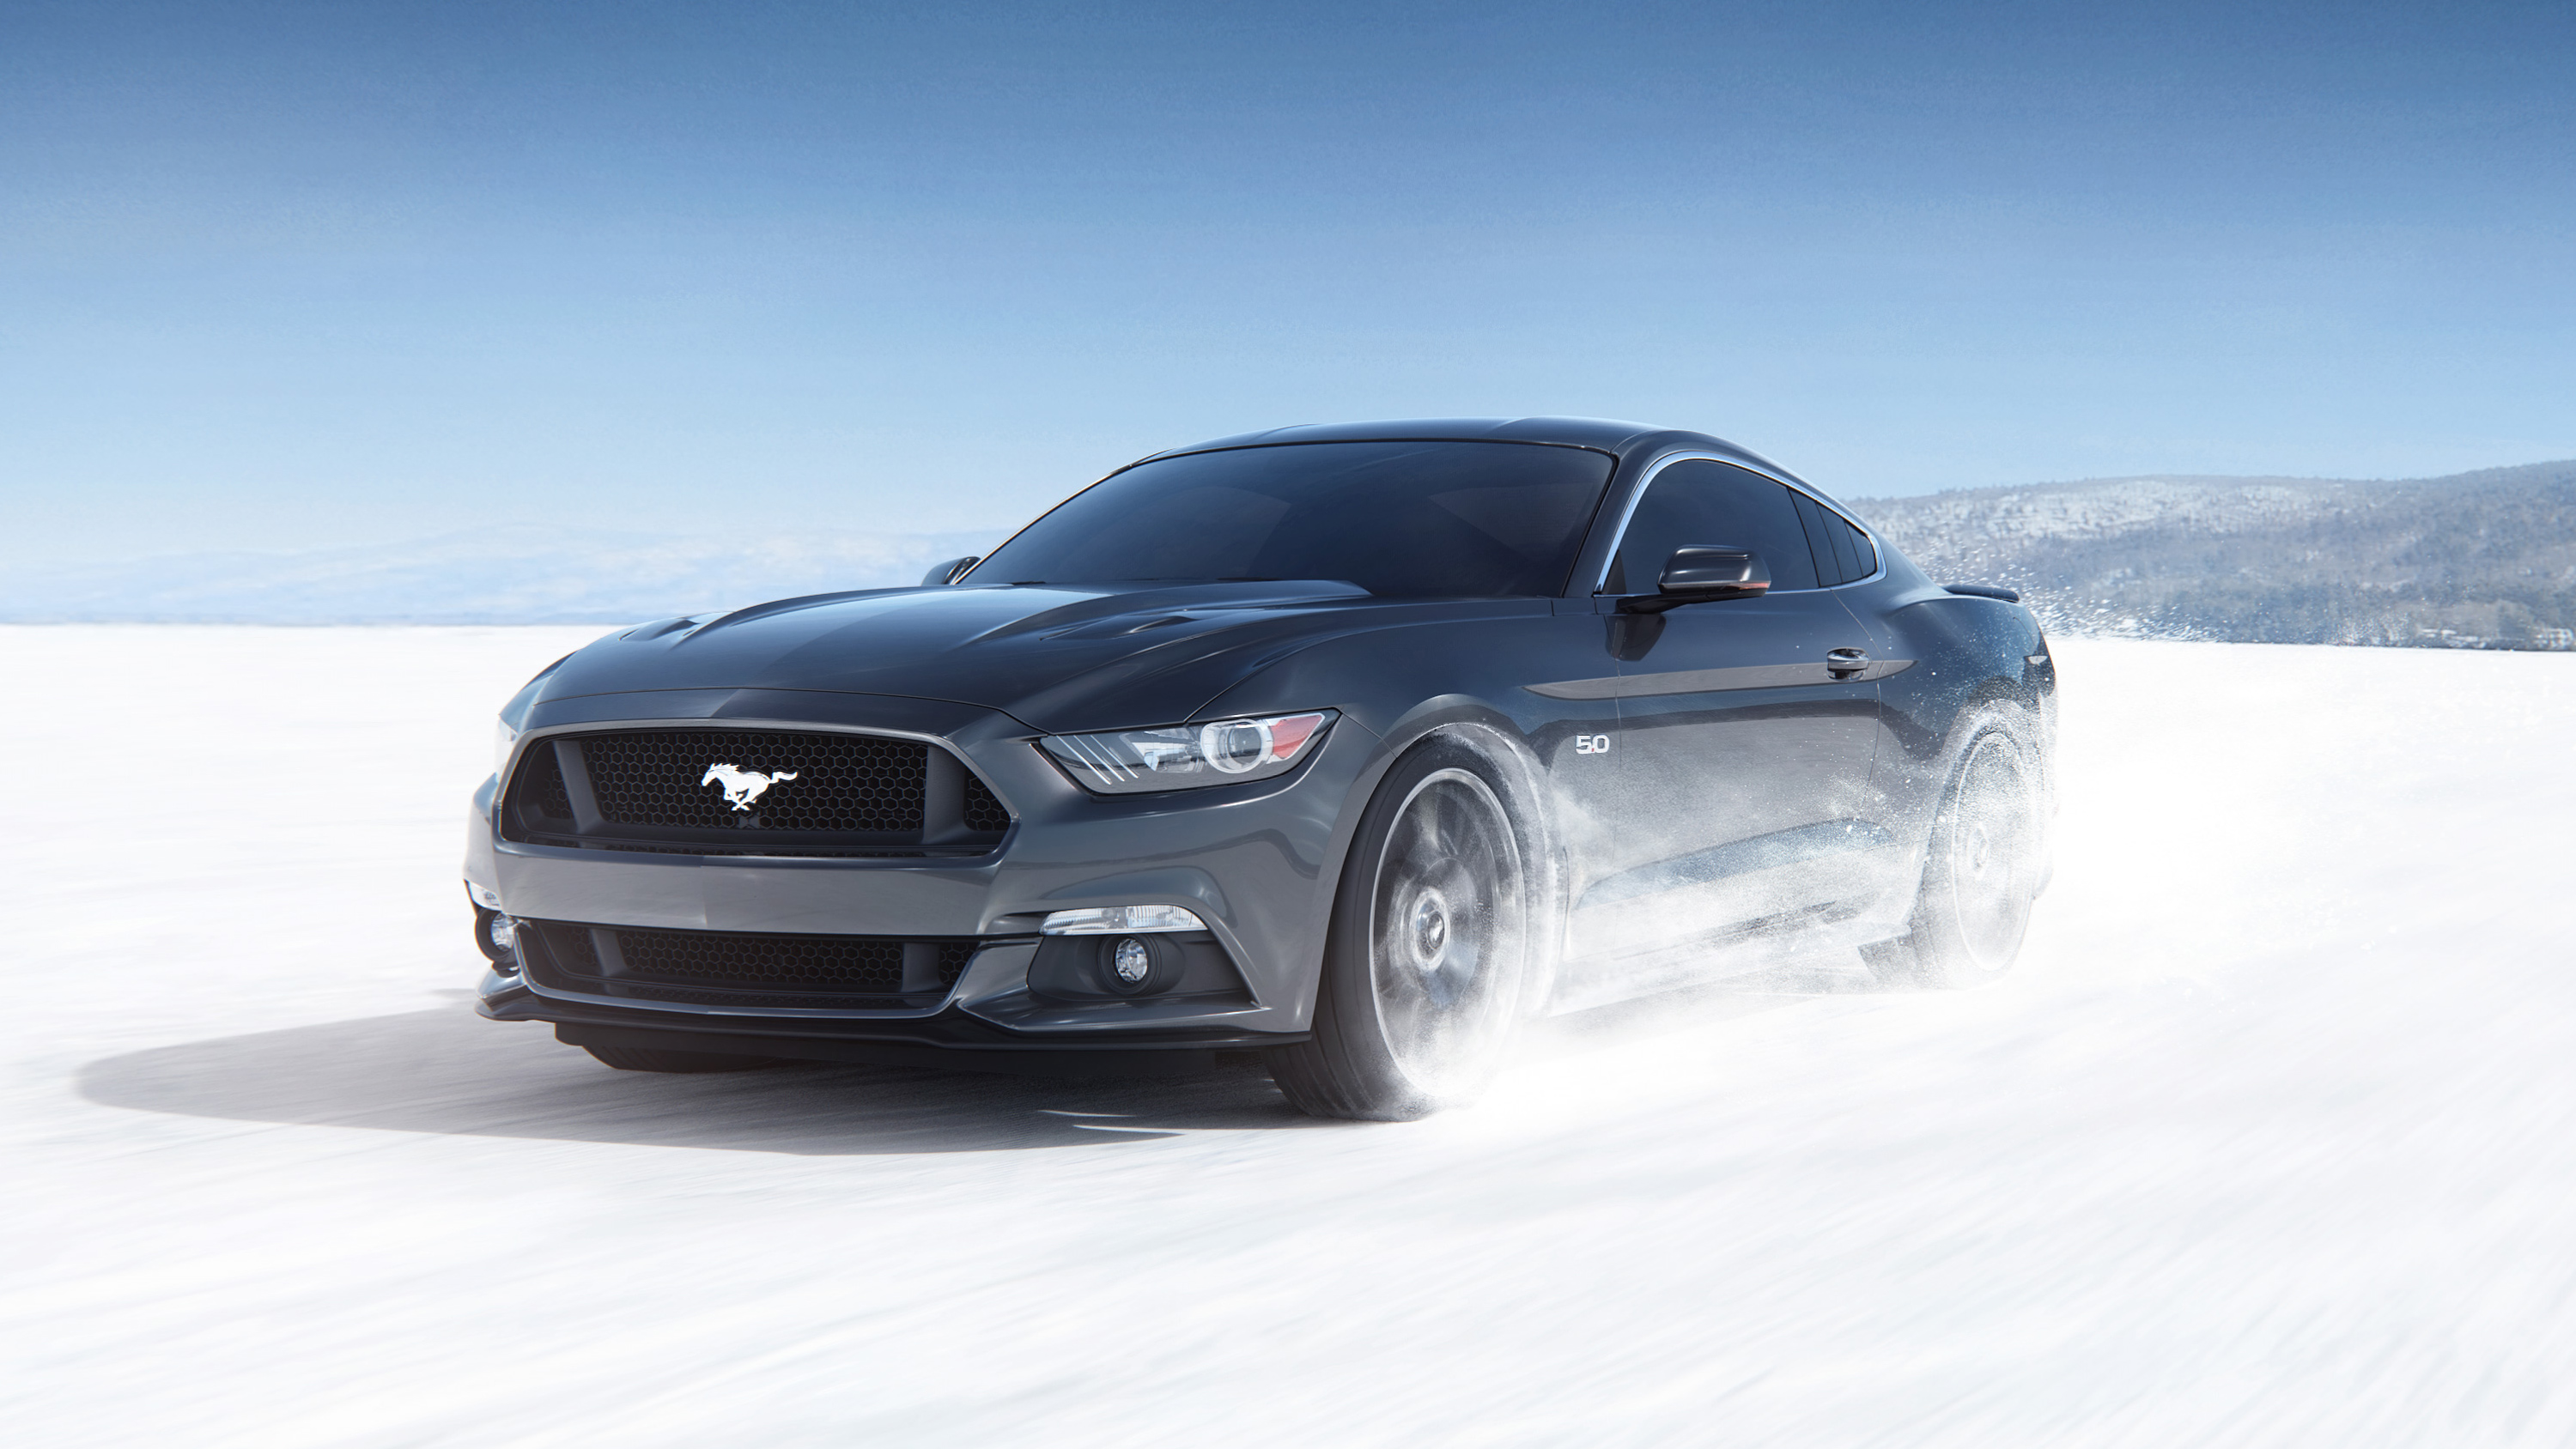 Hd Car Wallpapers For Android Tablets Ford Mustang 2018 4k Wallpaper Hd Car Wallpapers Id 9089